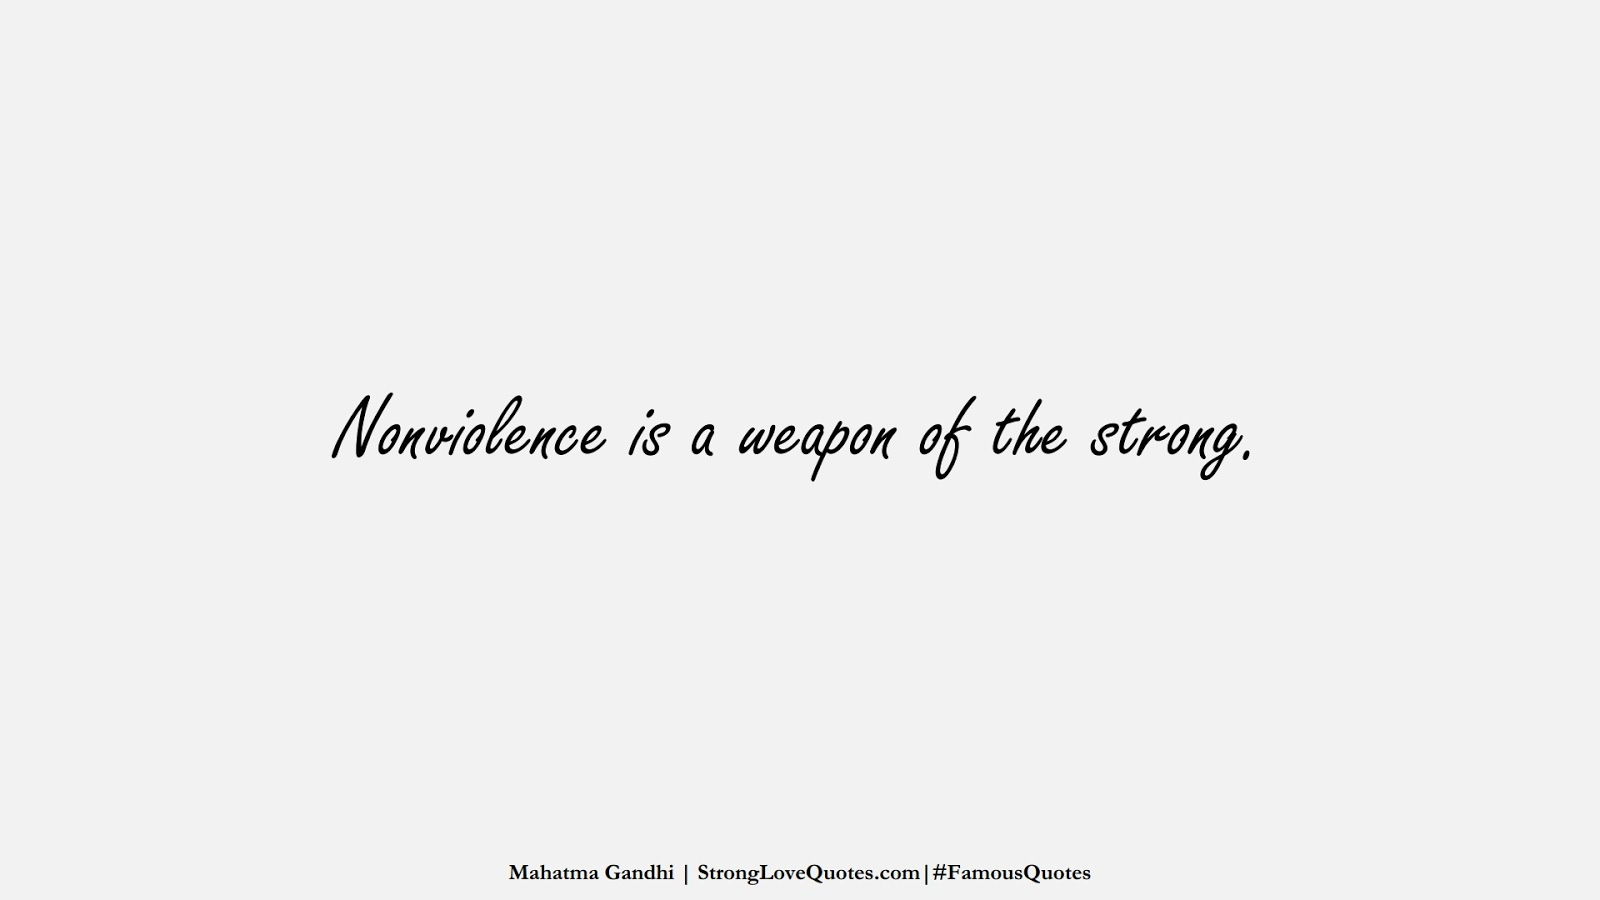 Nonviolence is a weapon of the strong. (Mahatma Gandhi);  #FamousQuotes